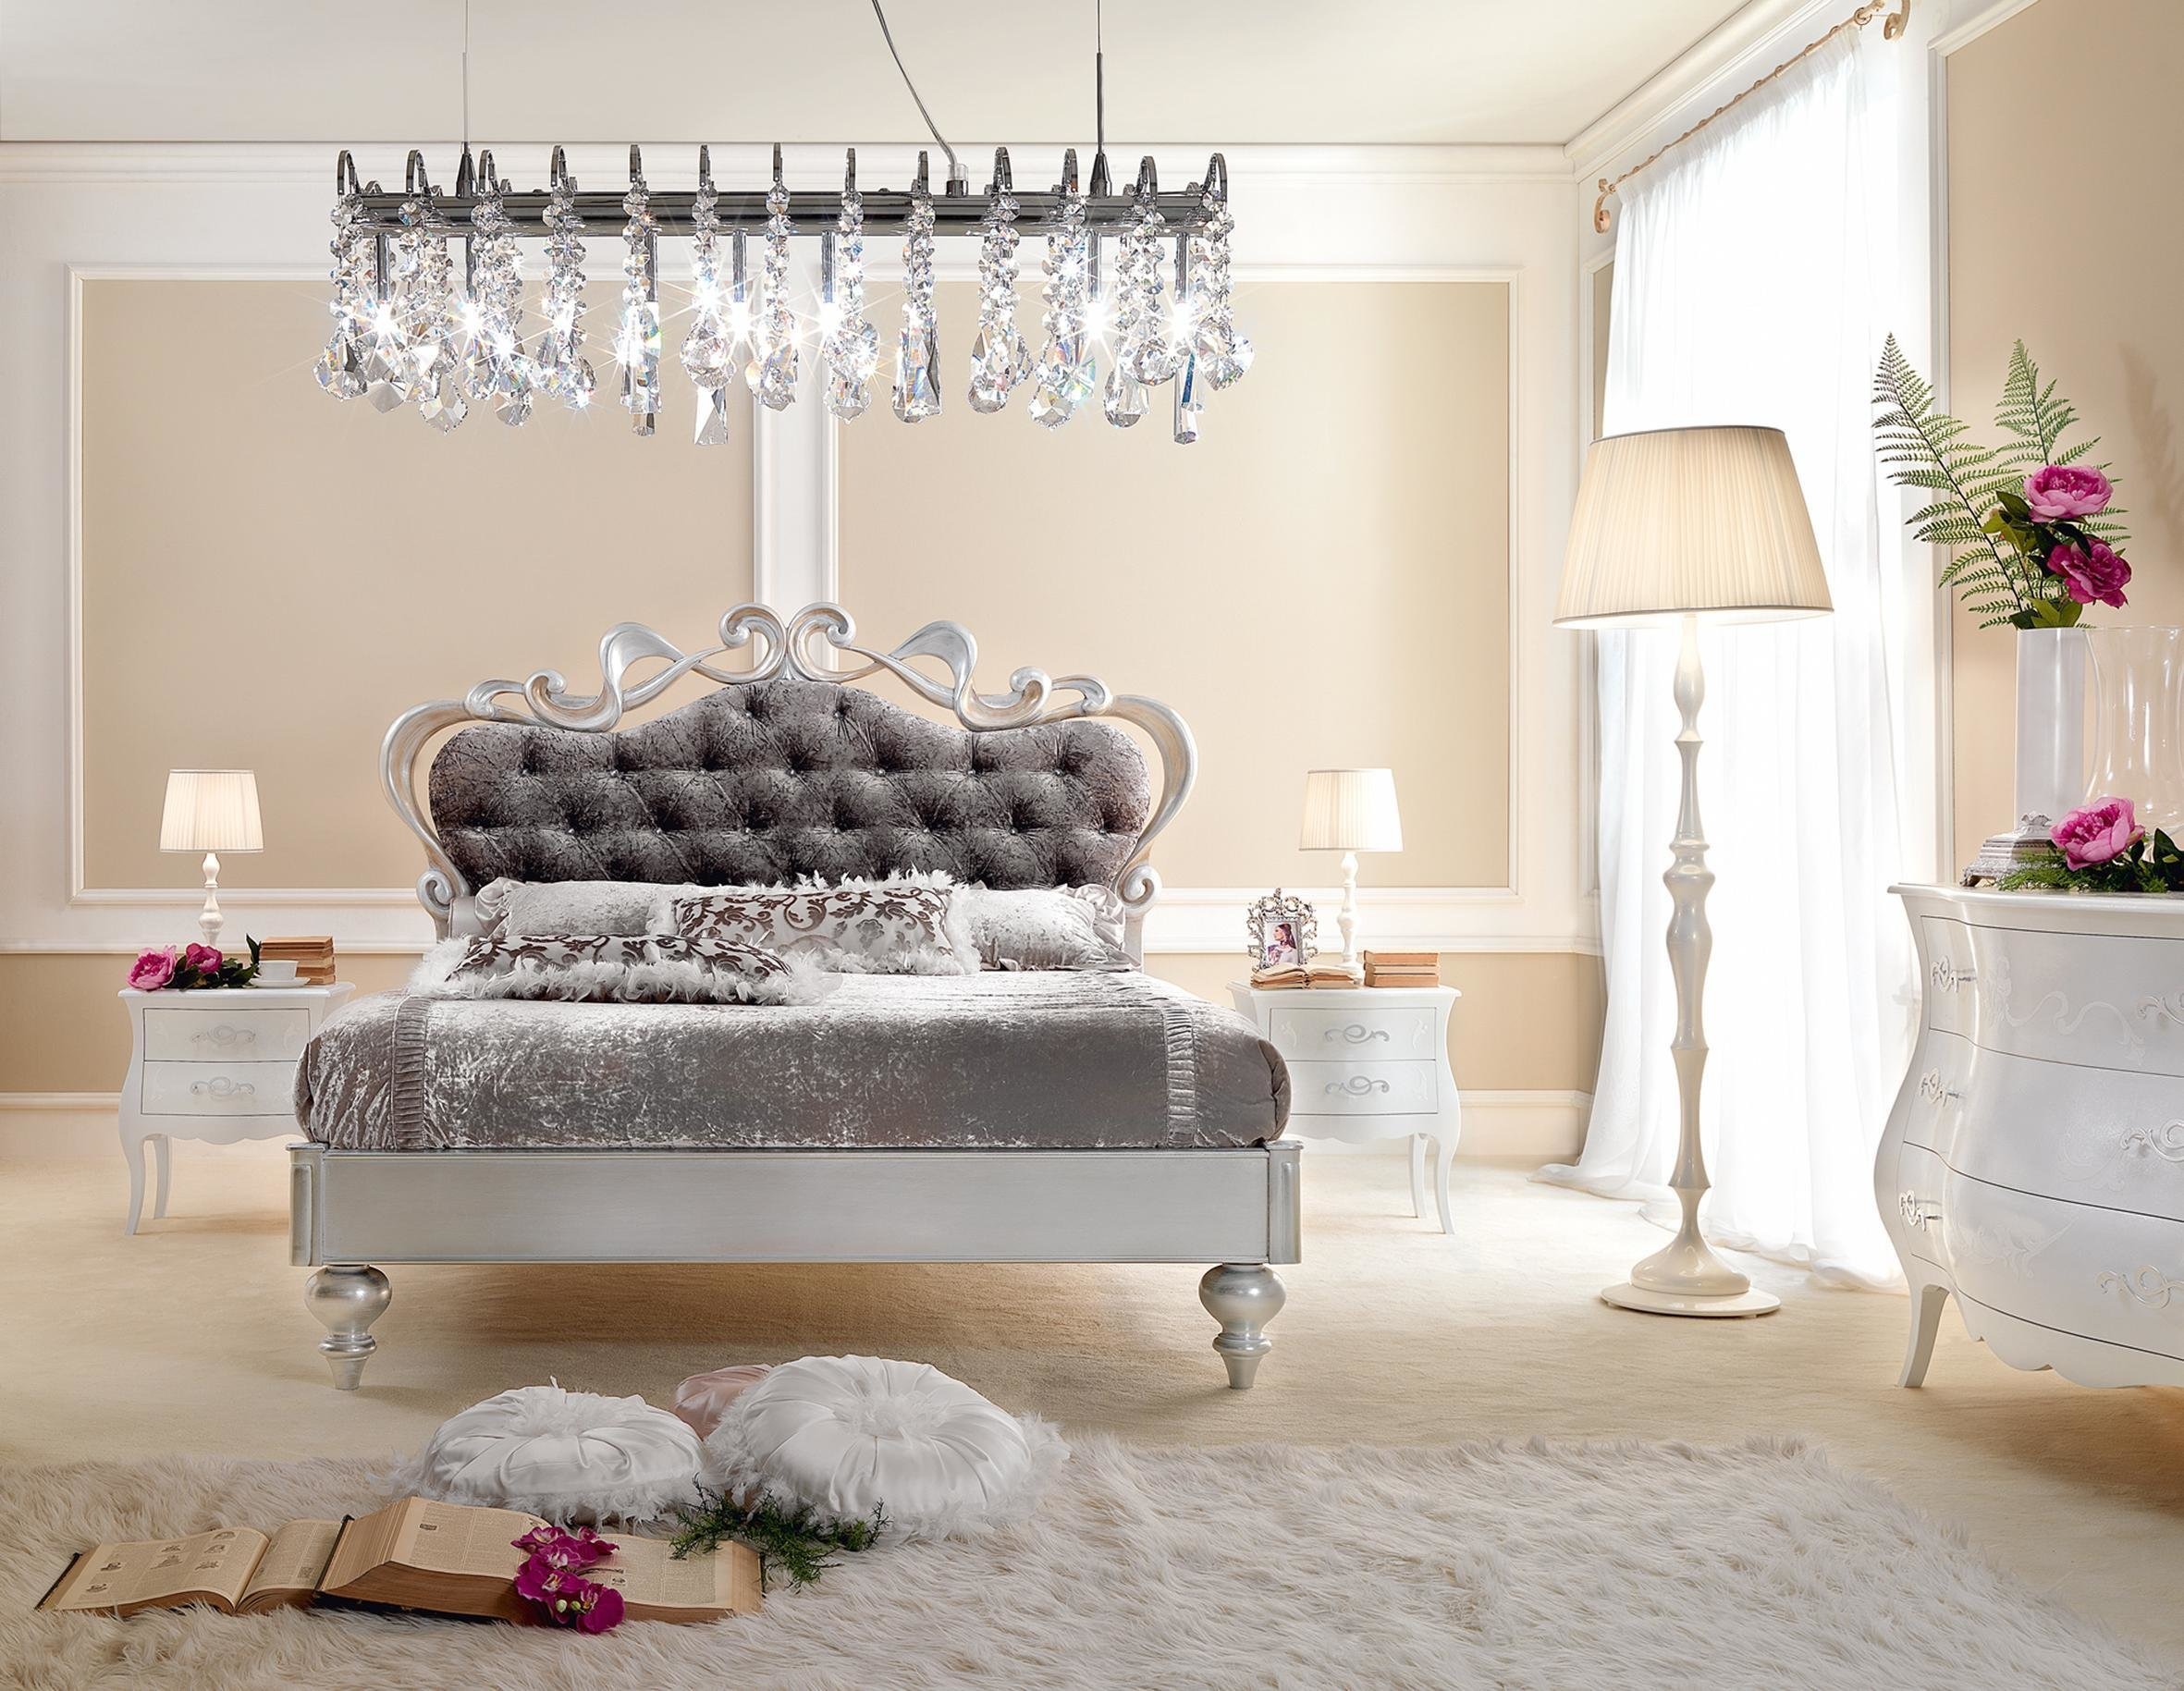 Best 18 Crystal Chandelier Designs To Spice Up The Look Of Your With Pictures